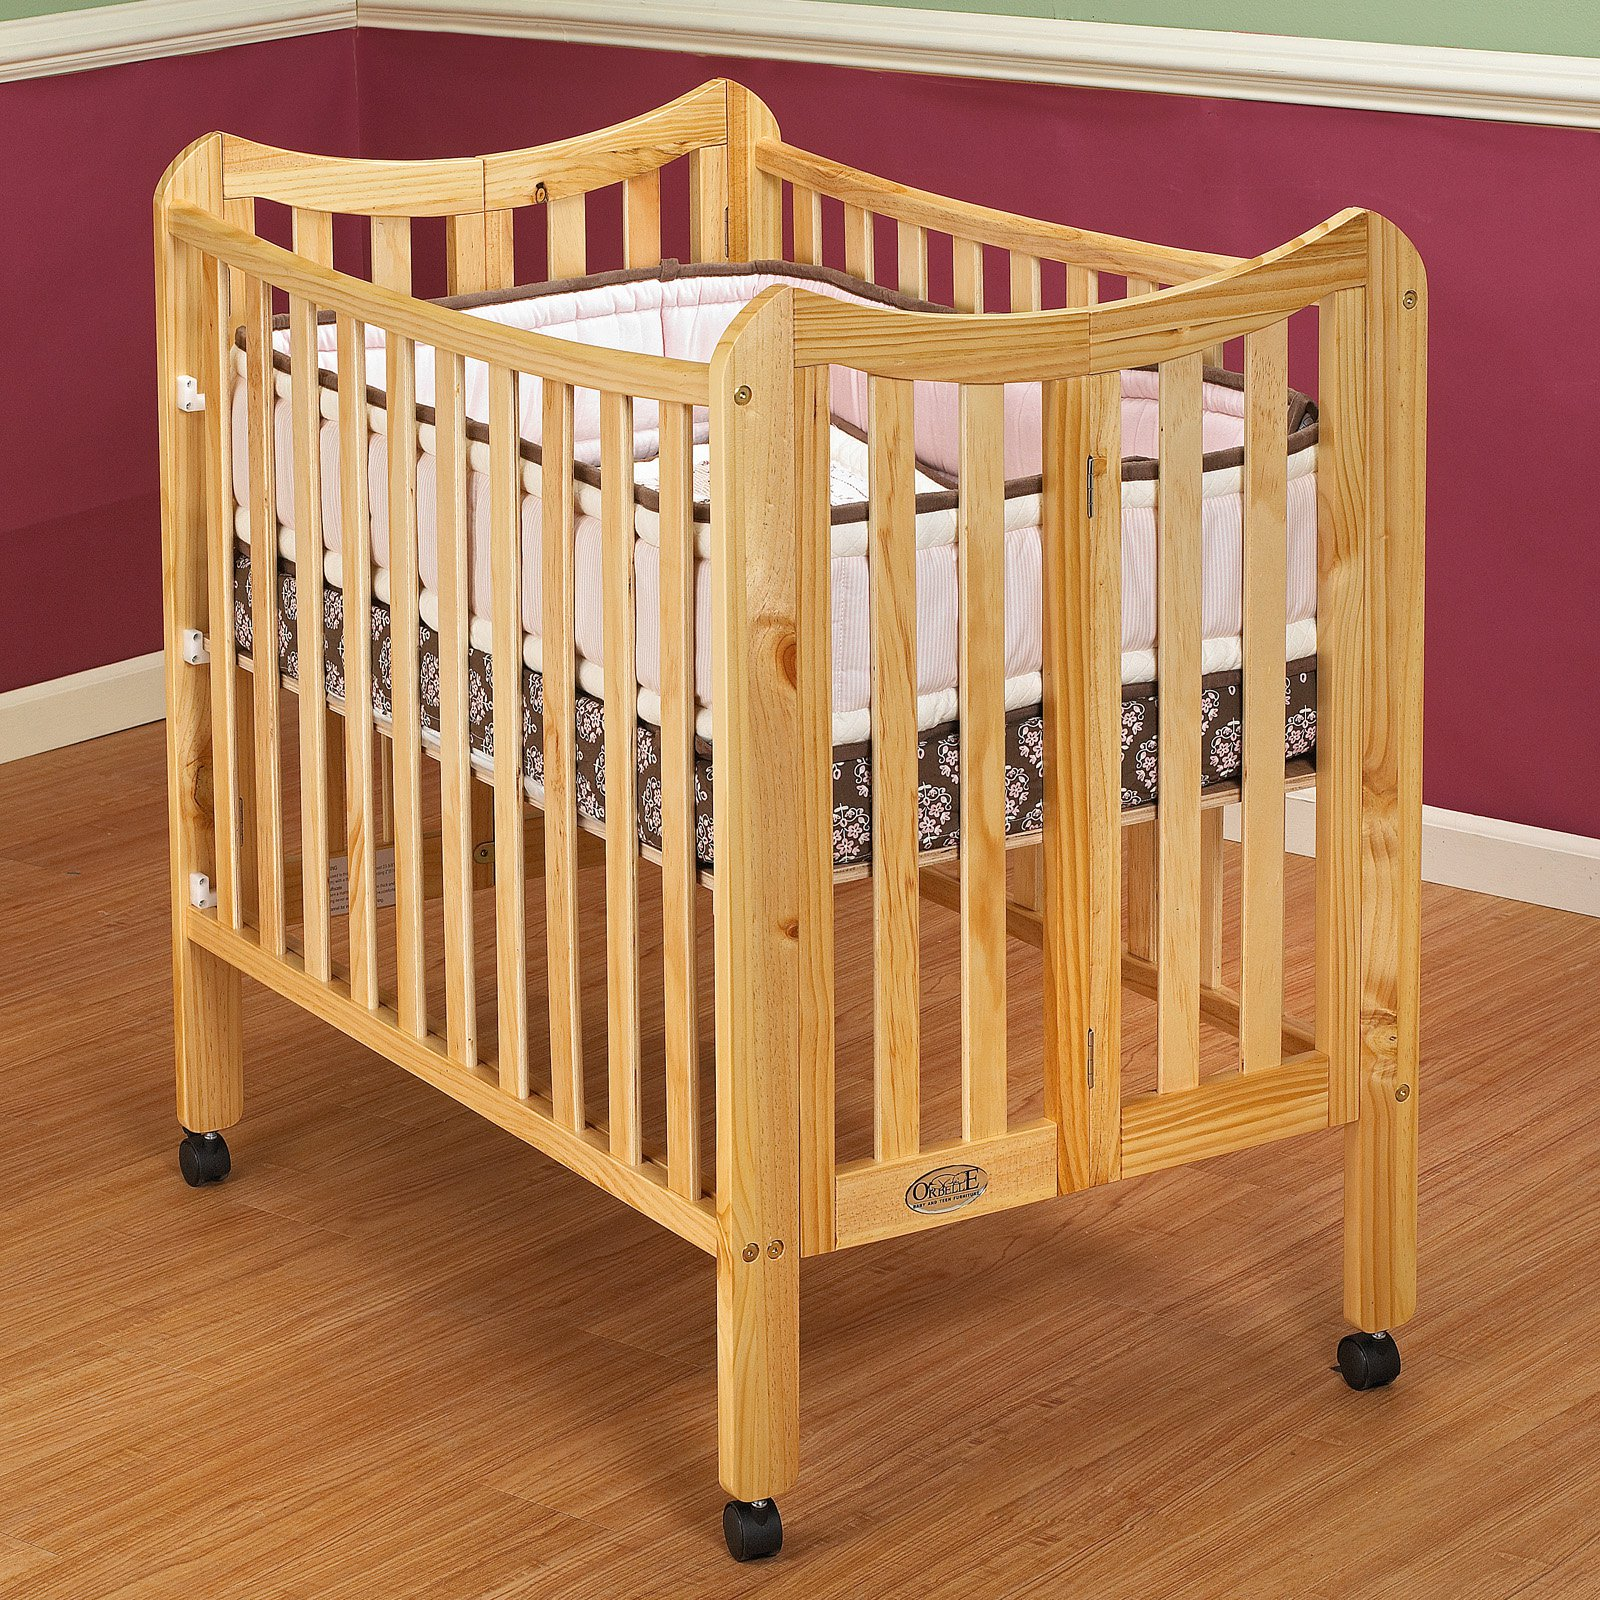 Orbelle Tian Two Level Mini Portable Crib - Natural